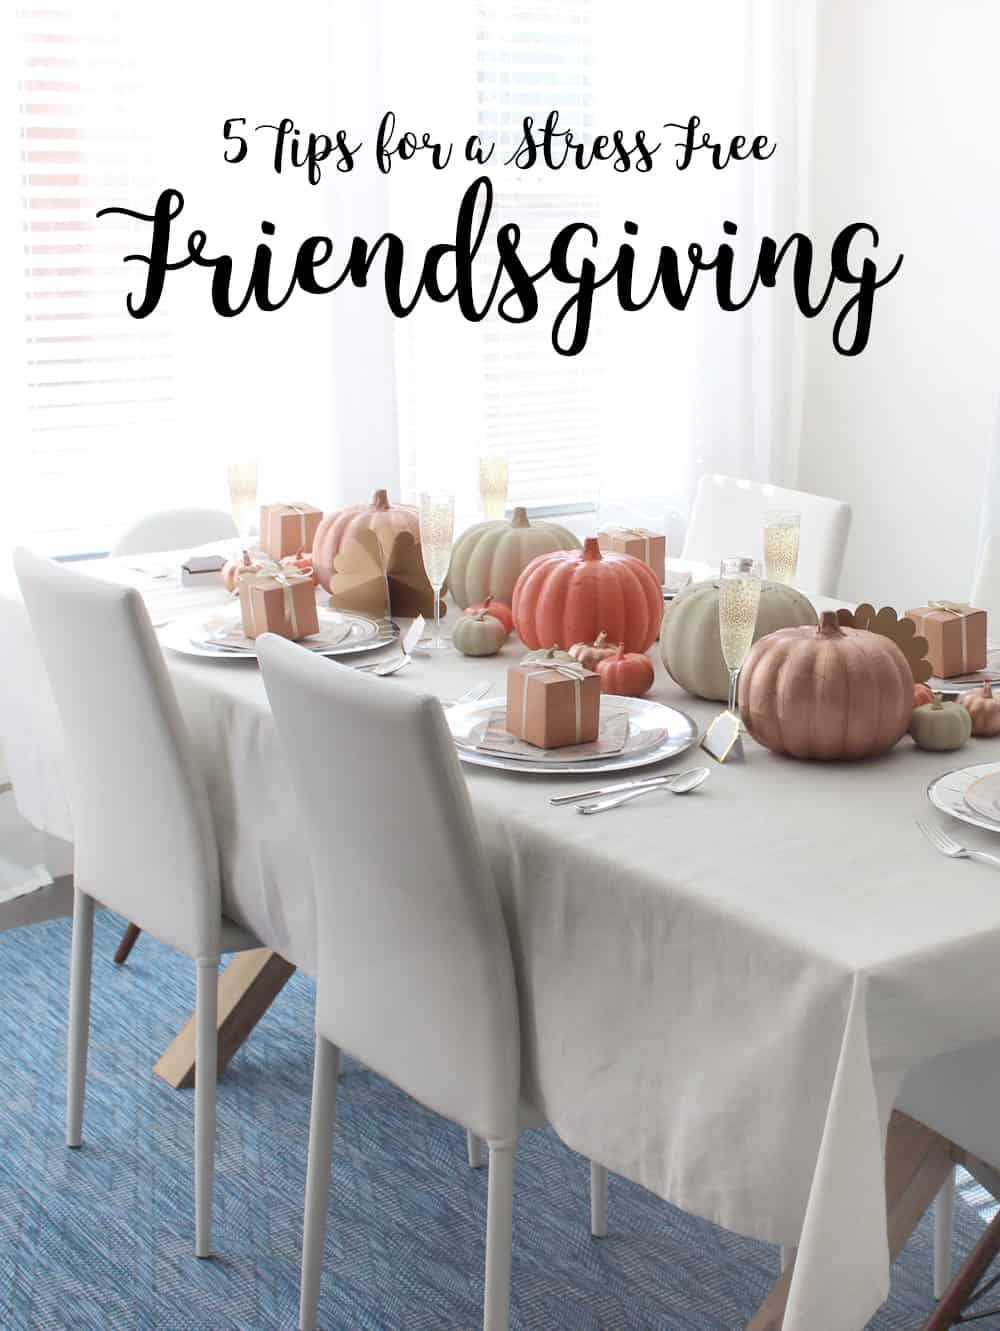 Five tips for a stress free Friendsgiving (or Thanksgiving) celebration! I love all of these! So many great ideas for kids to pass the time etc!